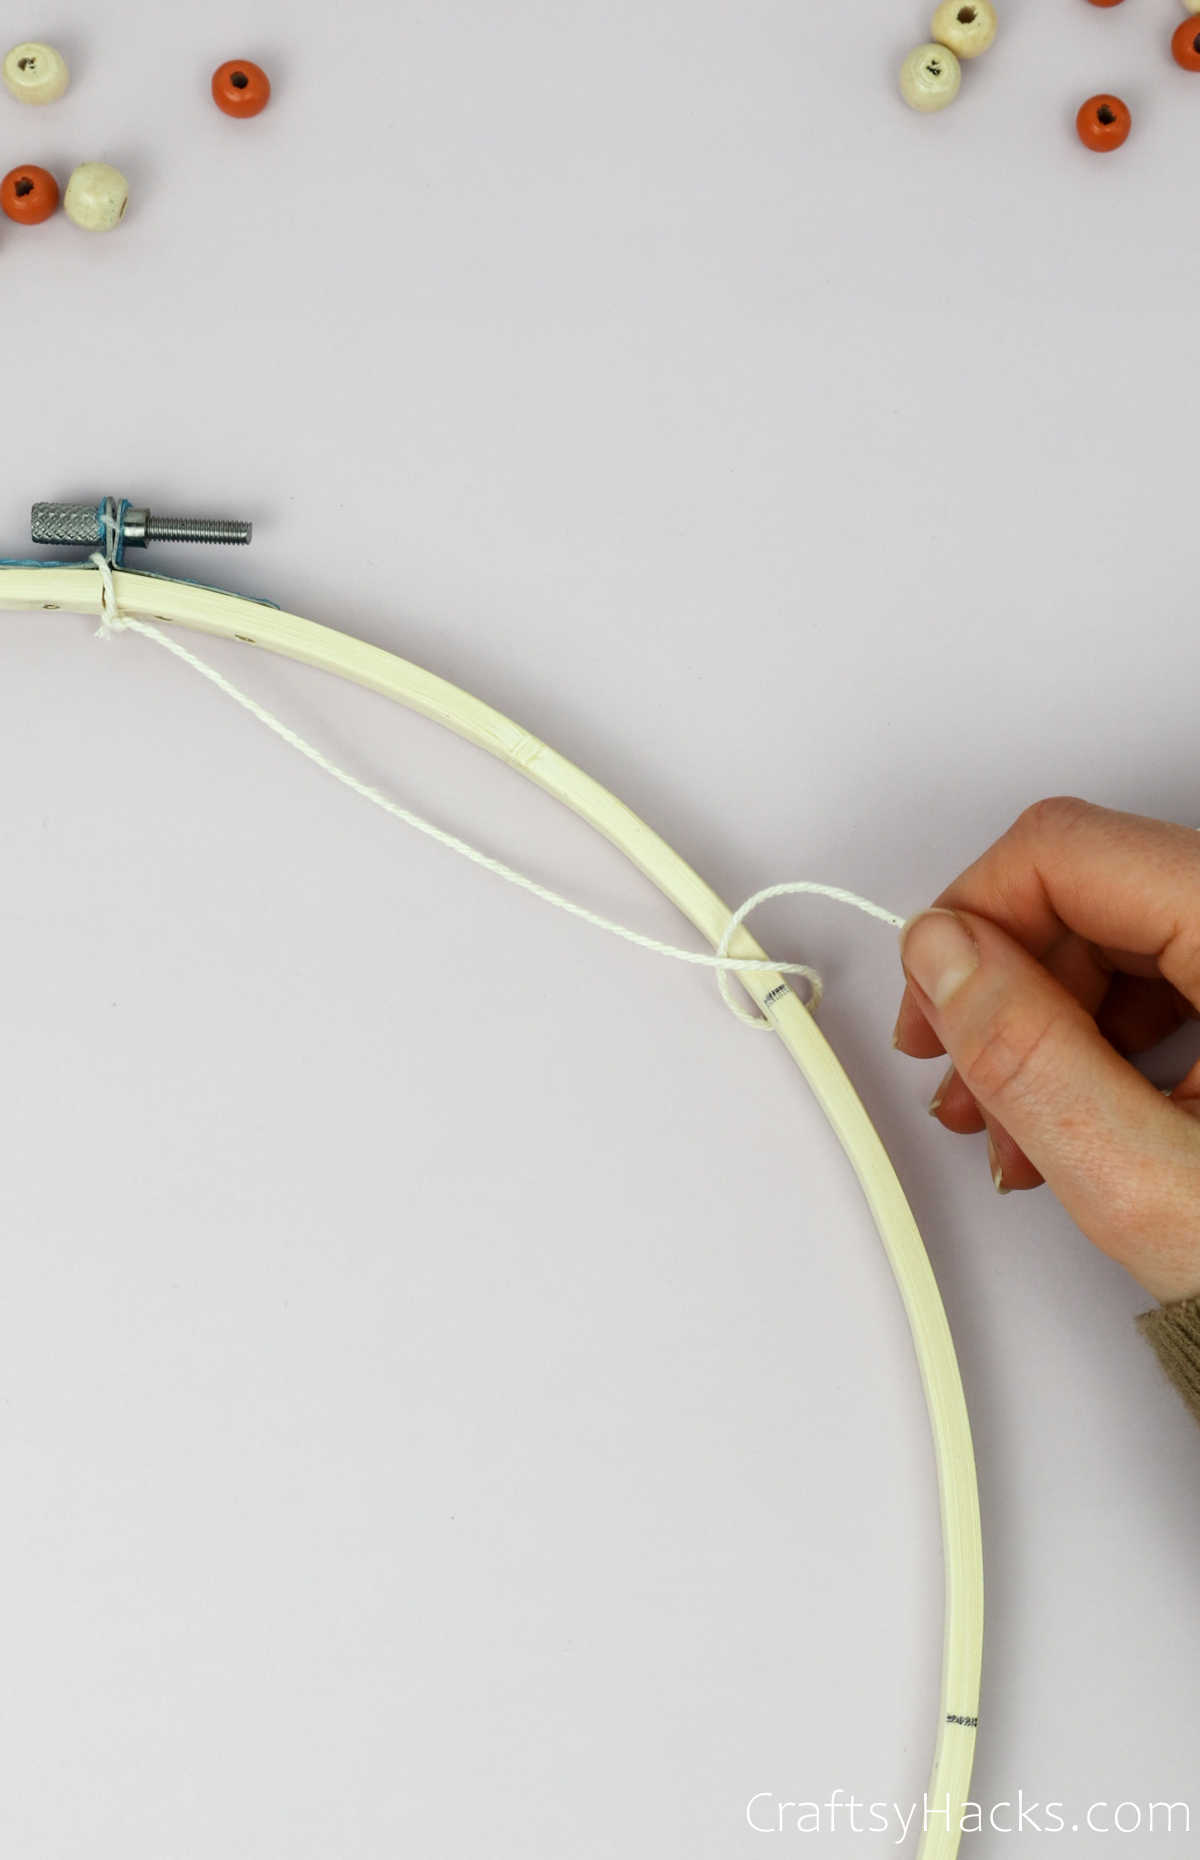 wrapping string around hoop